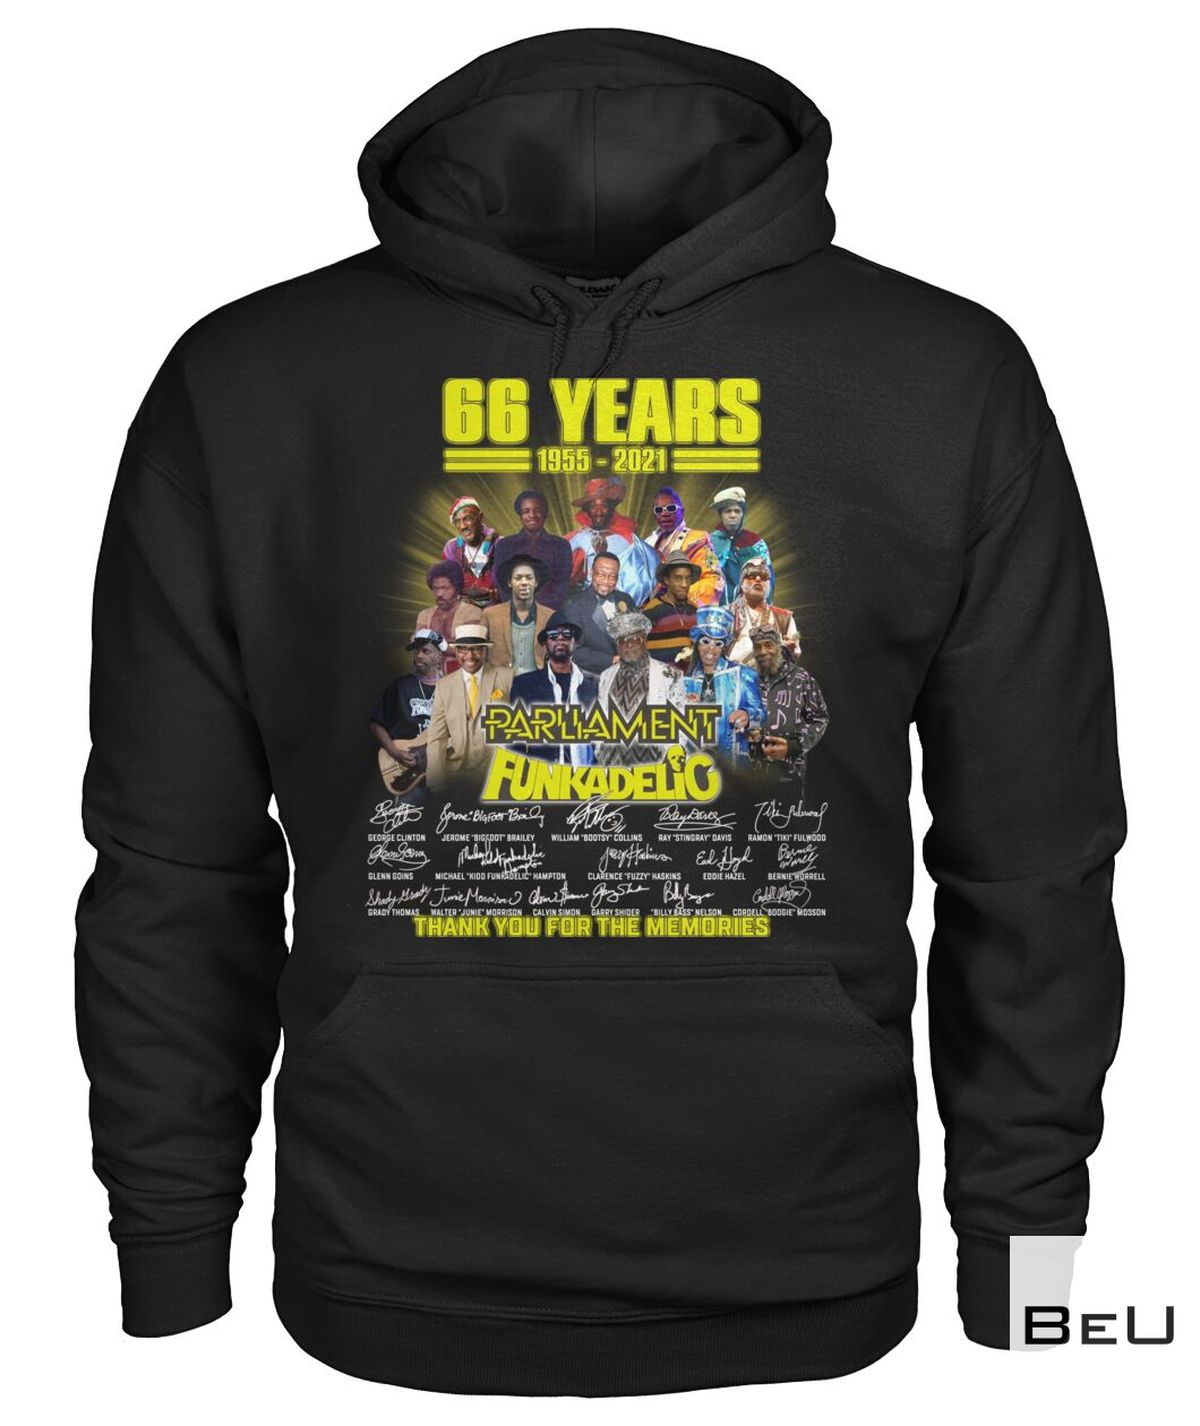 Excellent 66 Years Parliament Funkadelic Thank You Shirt, hoodie, tank top